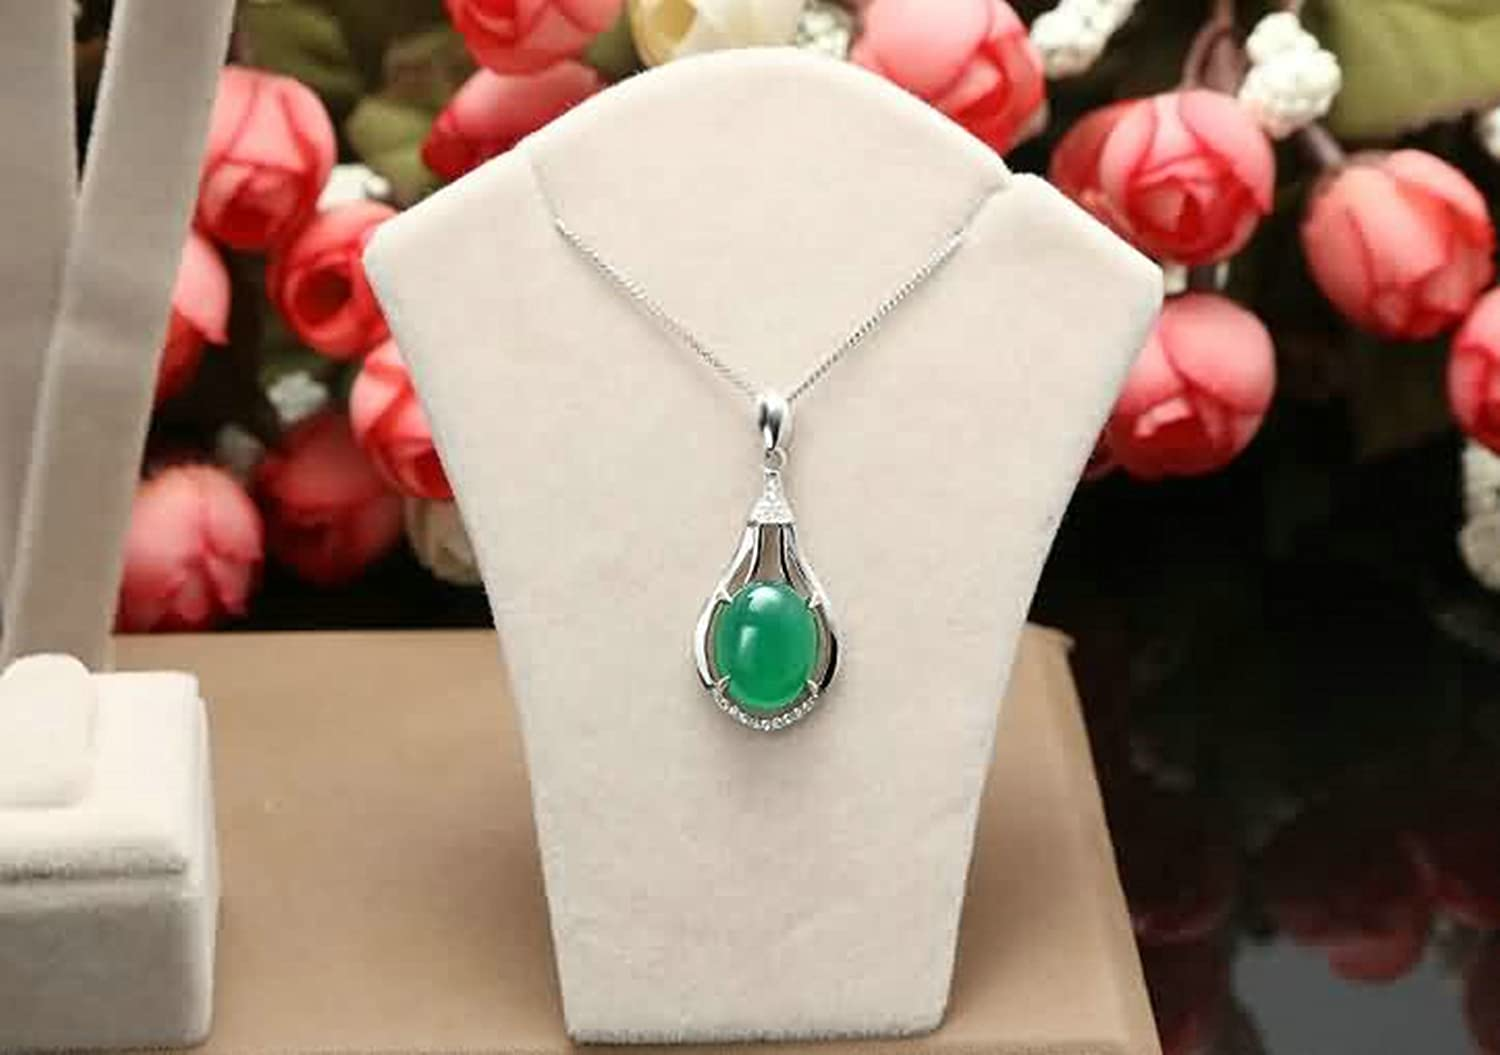 Aokarry Womens 925 Silver Sterling Pendant Necklace Gift for Mothers Day Geometry Oval Cubic Zirconia Silver Green